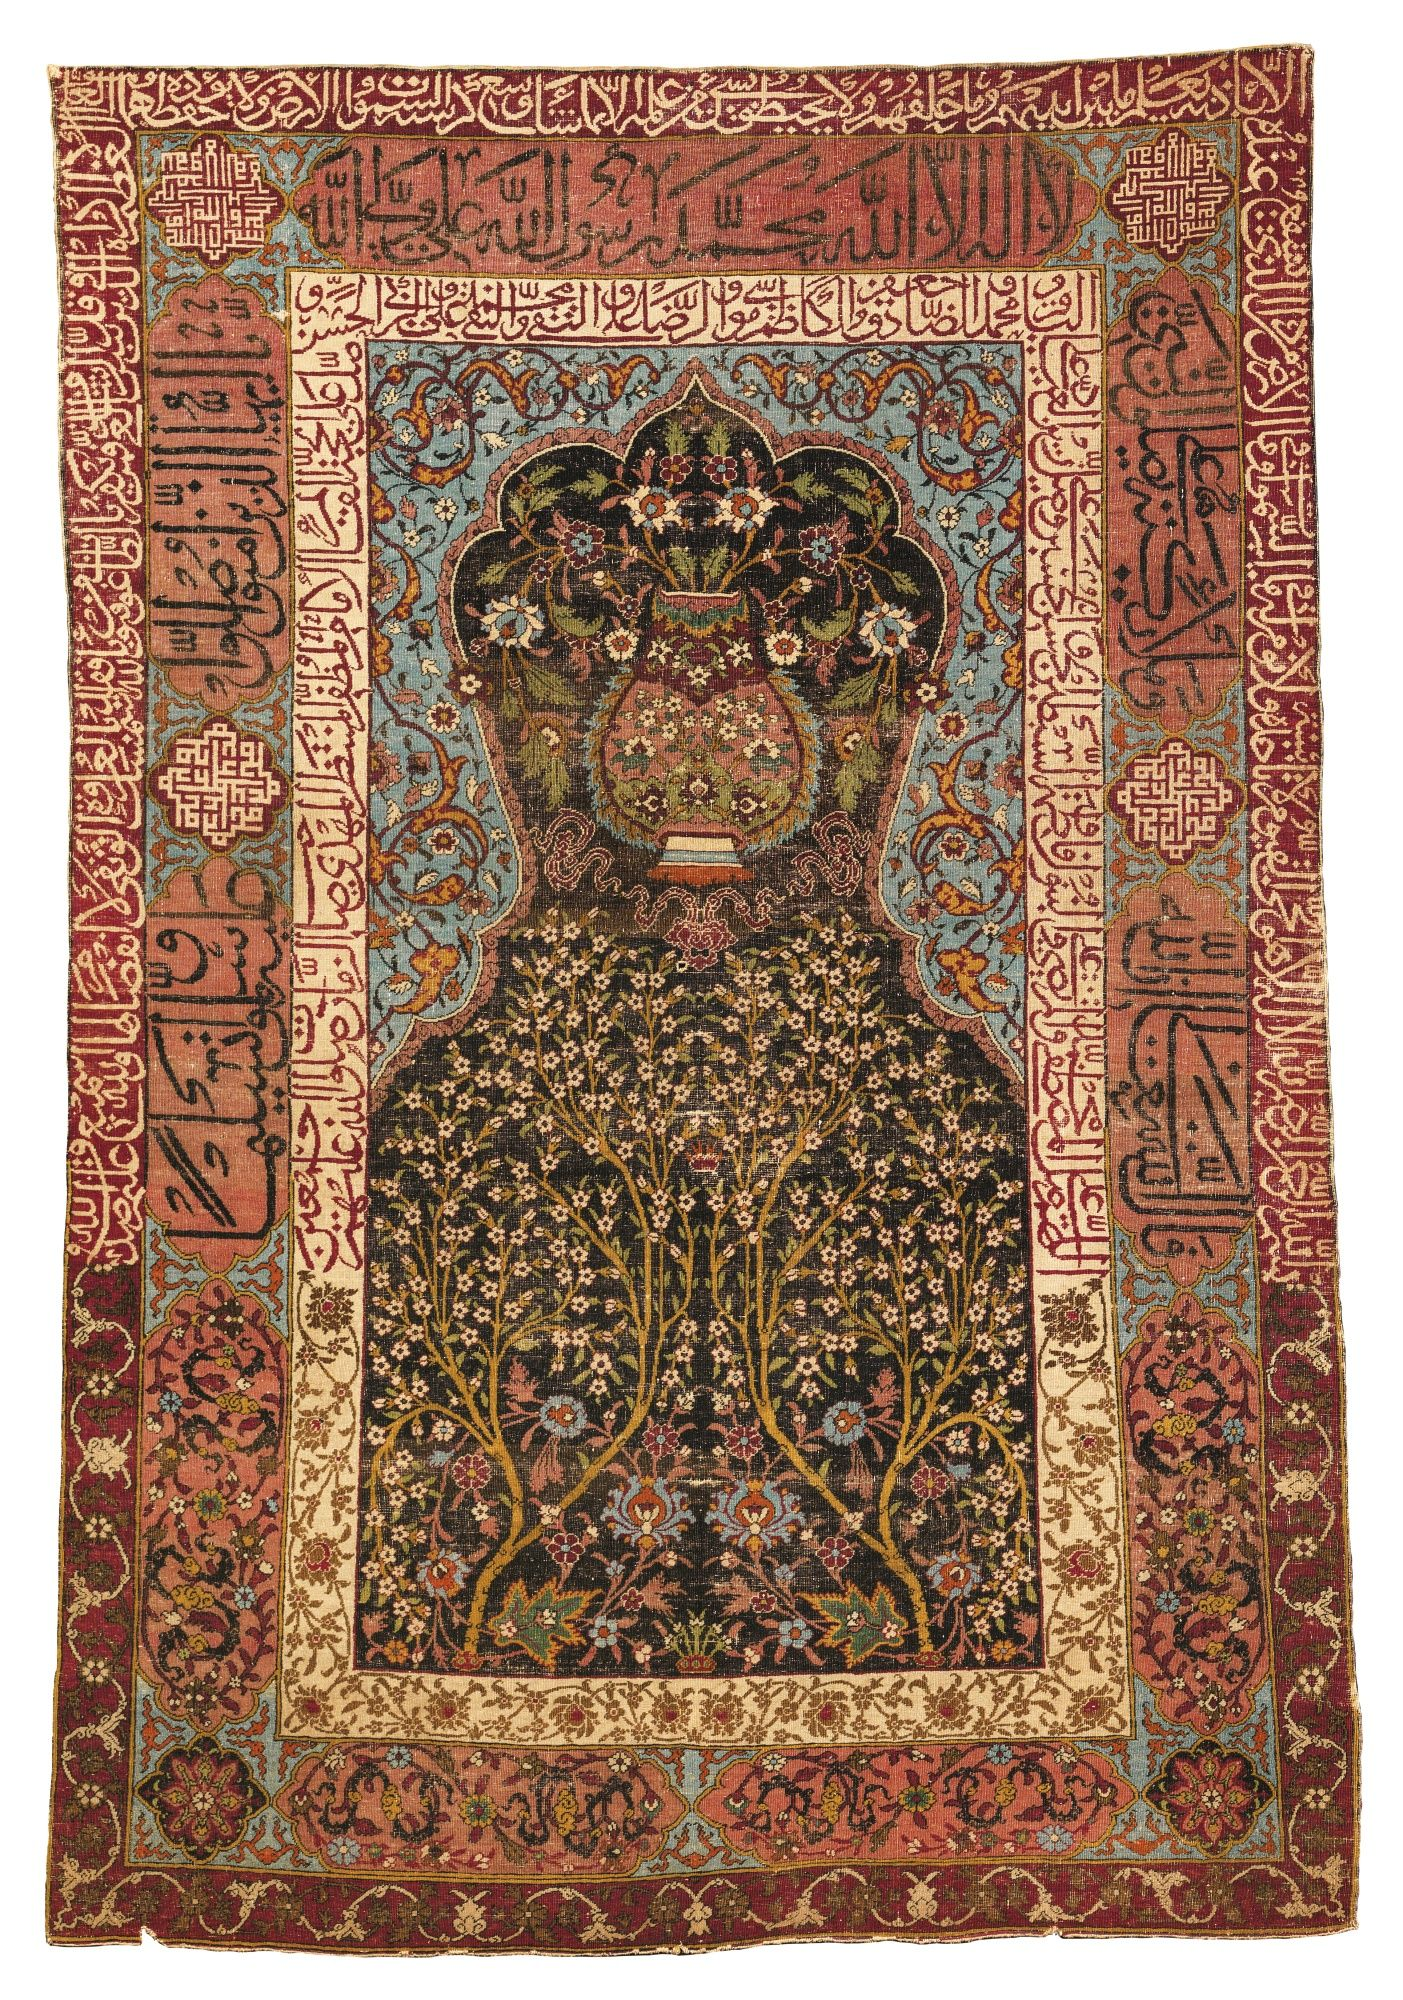 Lot 93 Sotheby39s Rug Sale Safavid Prayer Rug Kashan Or